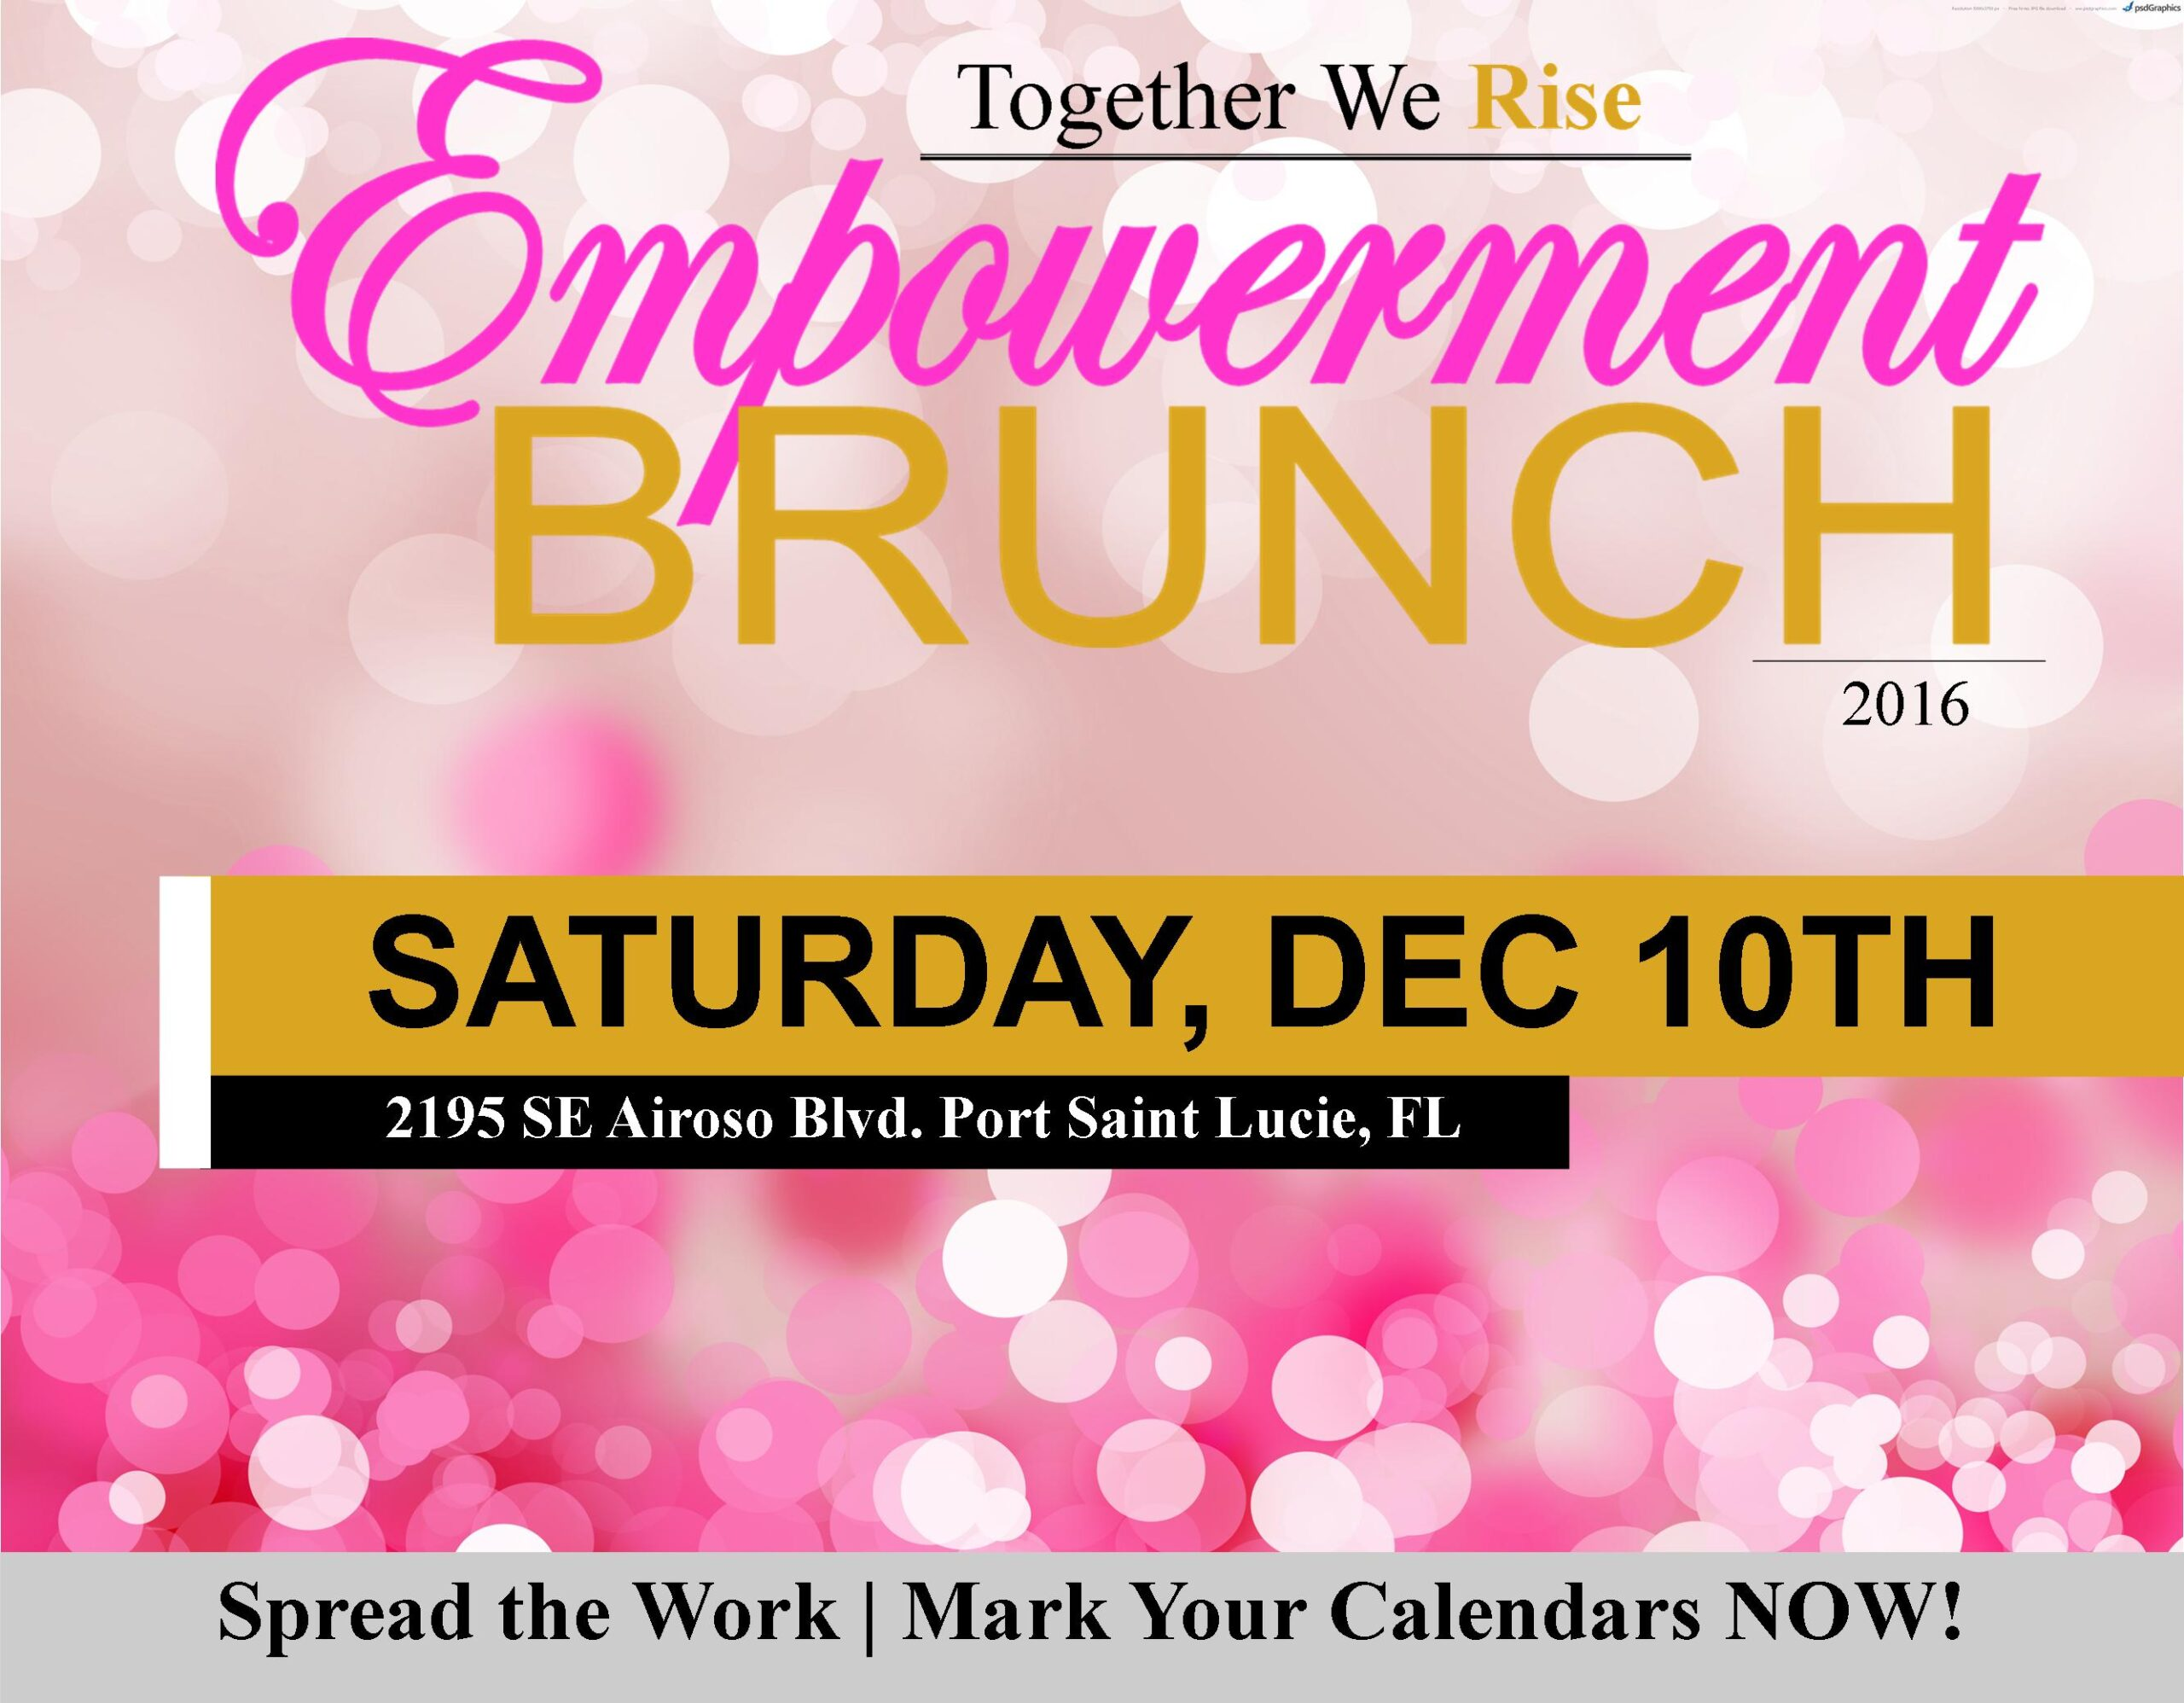 Together We Rise Empowerment Brunch